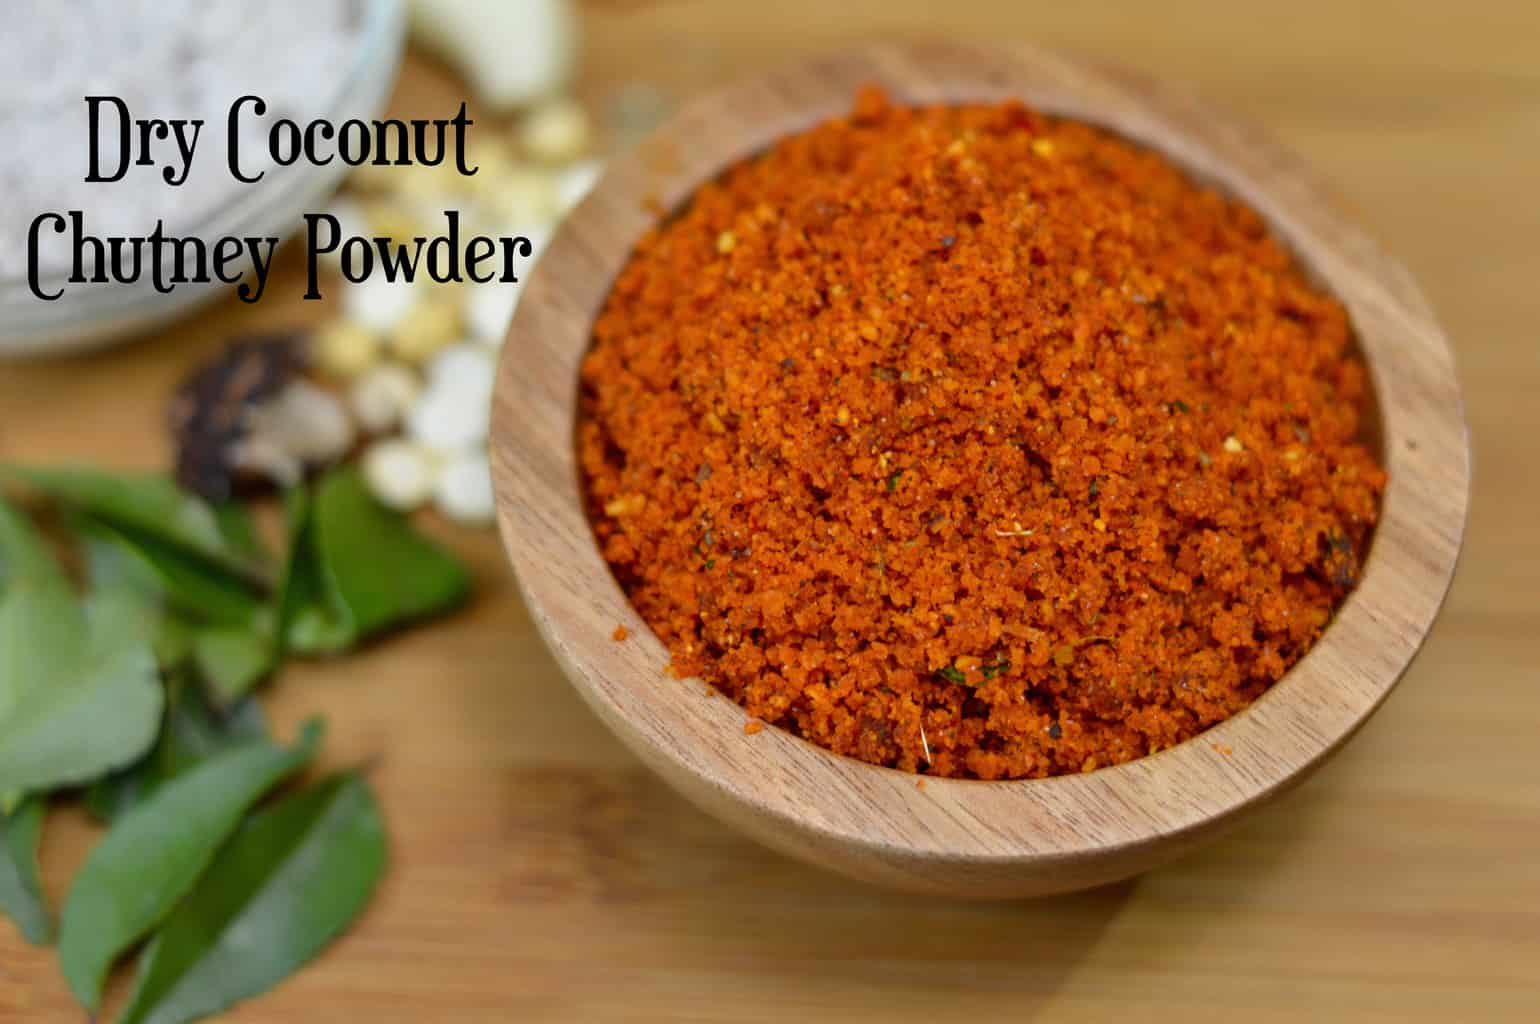 Dry Coconut Chutney Powder is flavorful breakfast side dish prepared using dry coconut, fried gram, red chili powder, curry leaves, garlic, tamarind ,jaggery and salt